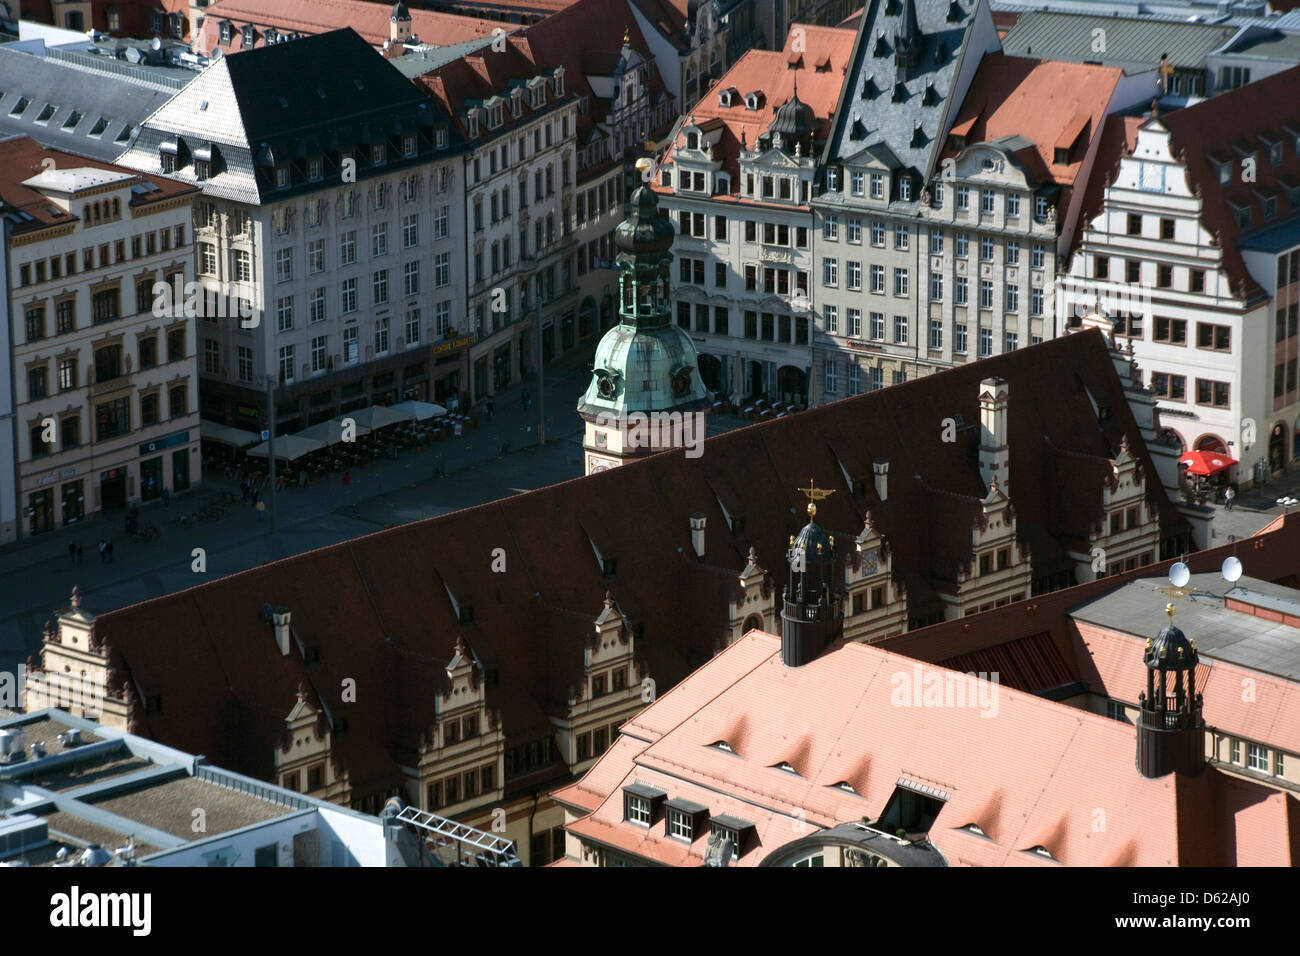 View of Old Town Leipzig, Germany from atop Panorama Tower, the city's only skyscraper. - Stock Image